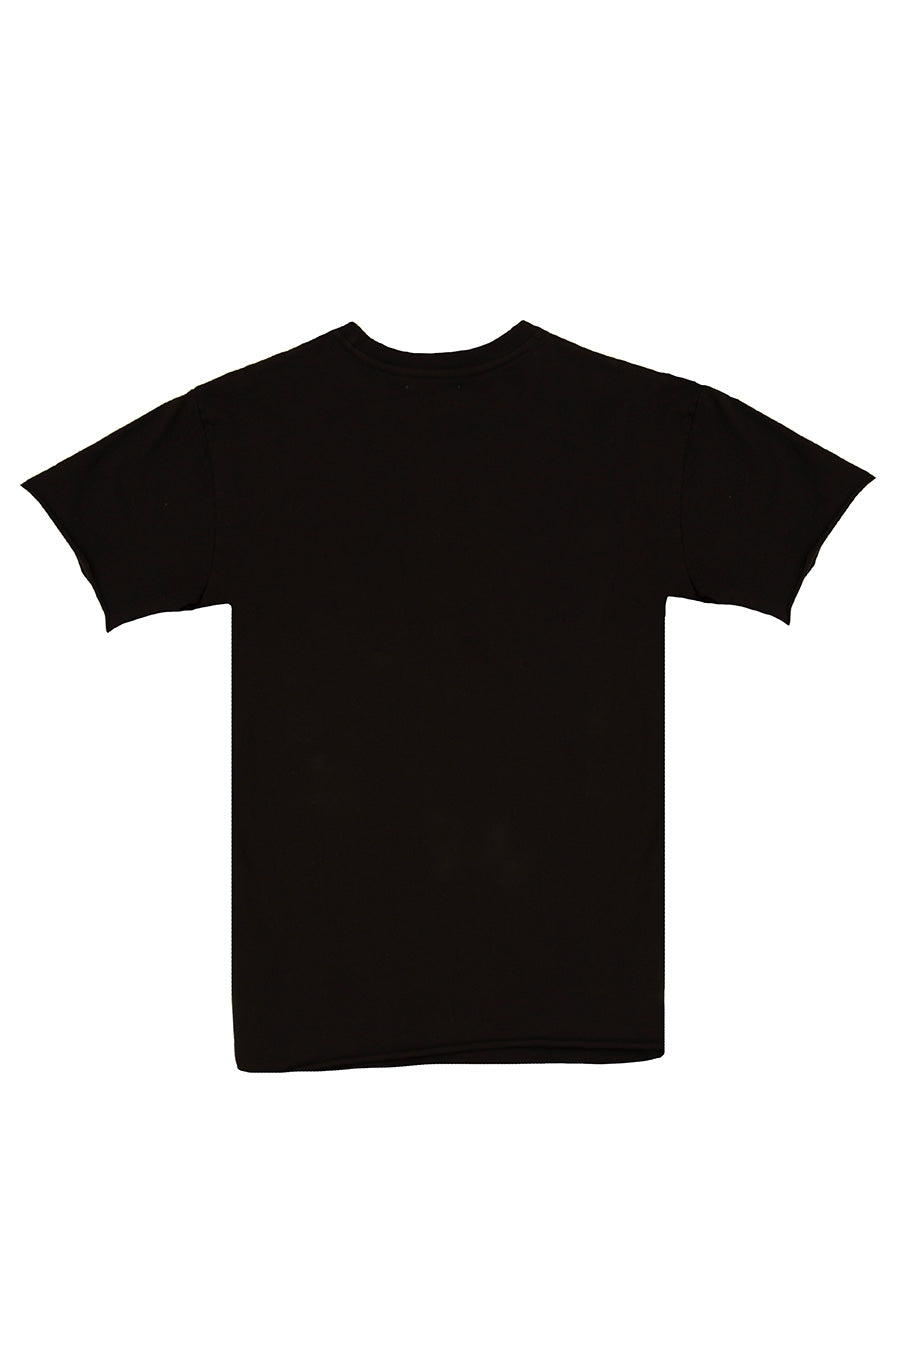 John Elliott - Black Anti Expo T-Shirt | 1032 SPACE